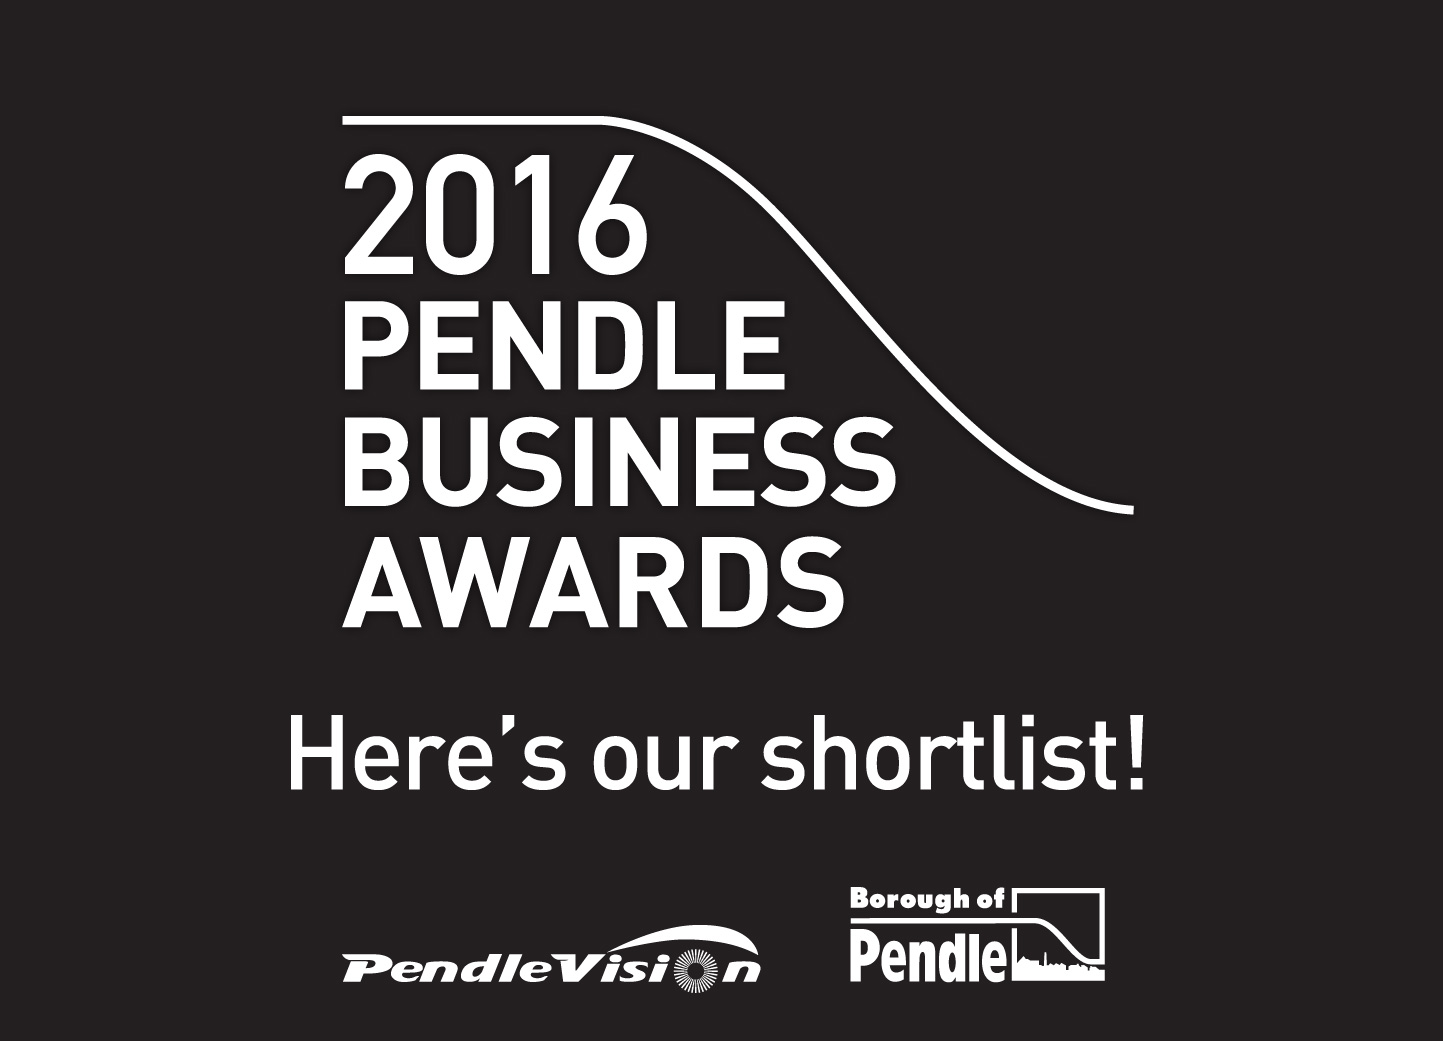 Pendle Business Awards - here's our shortlist!